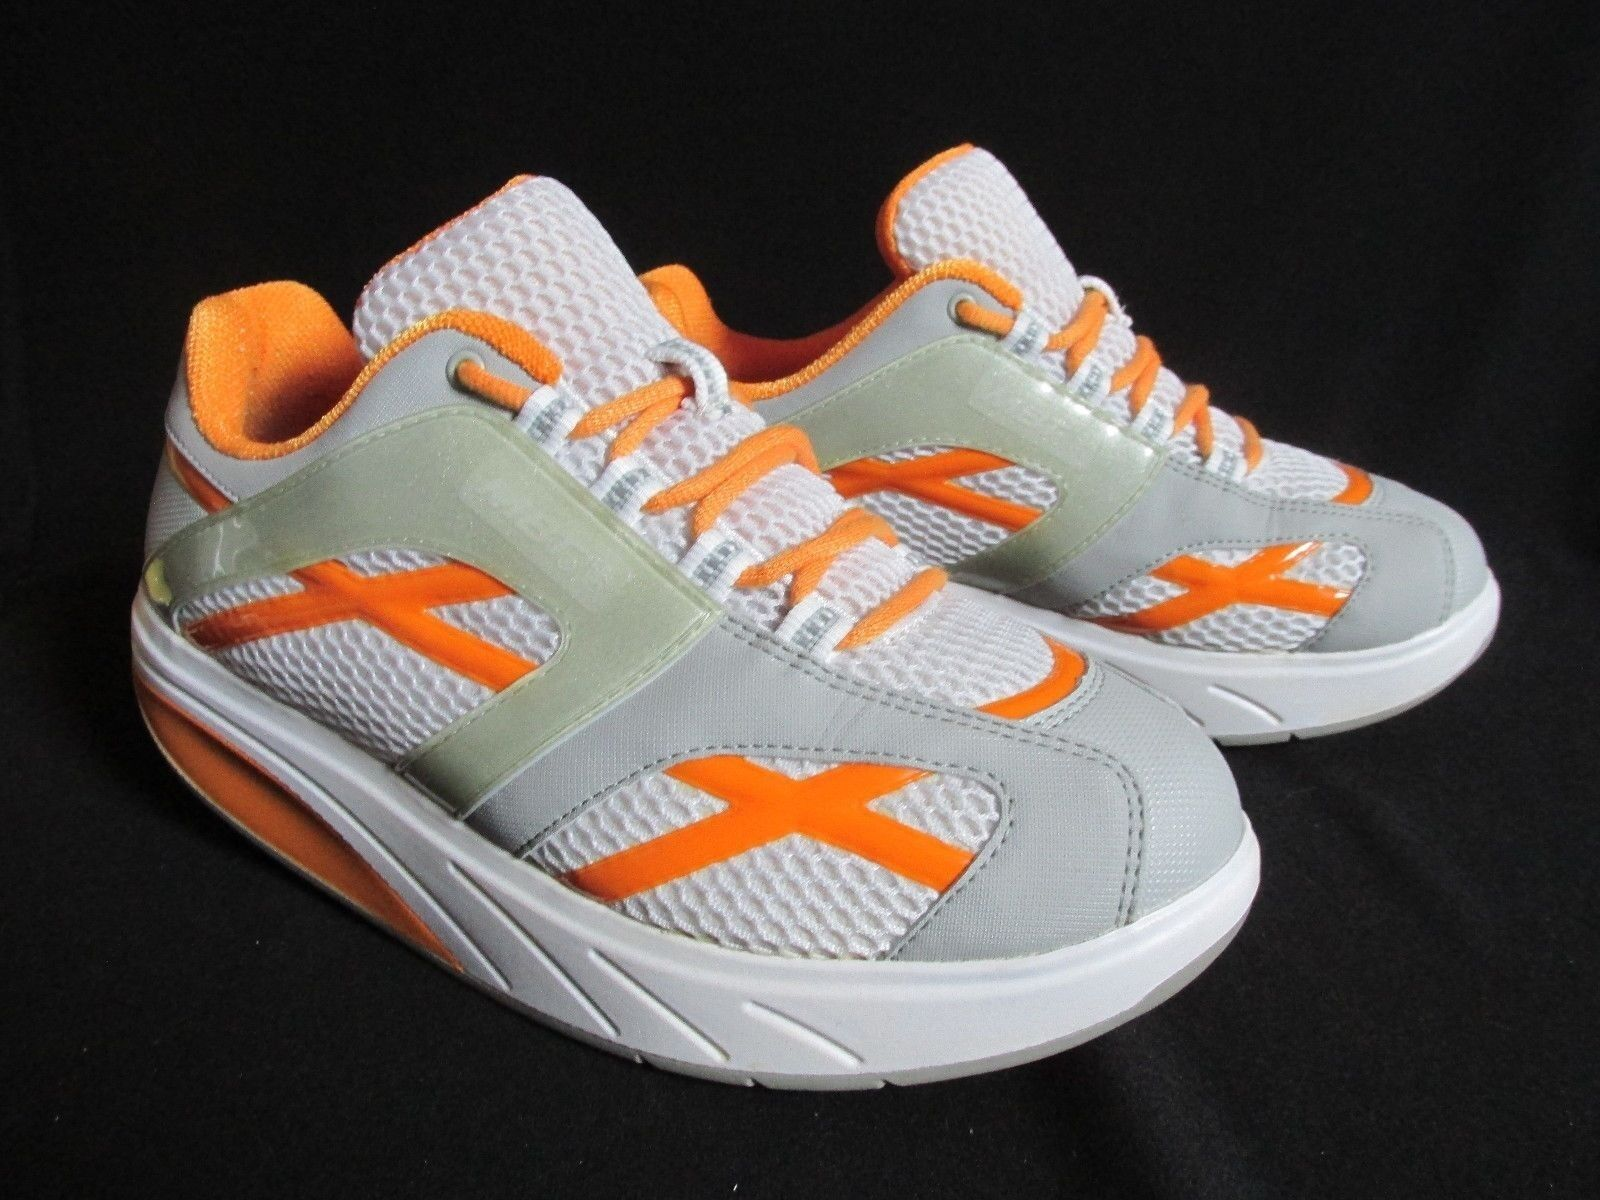 MBT M. Walk orange Synthetic Mesh Women's shoes US 9M Mint Condition